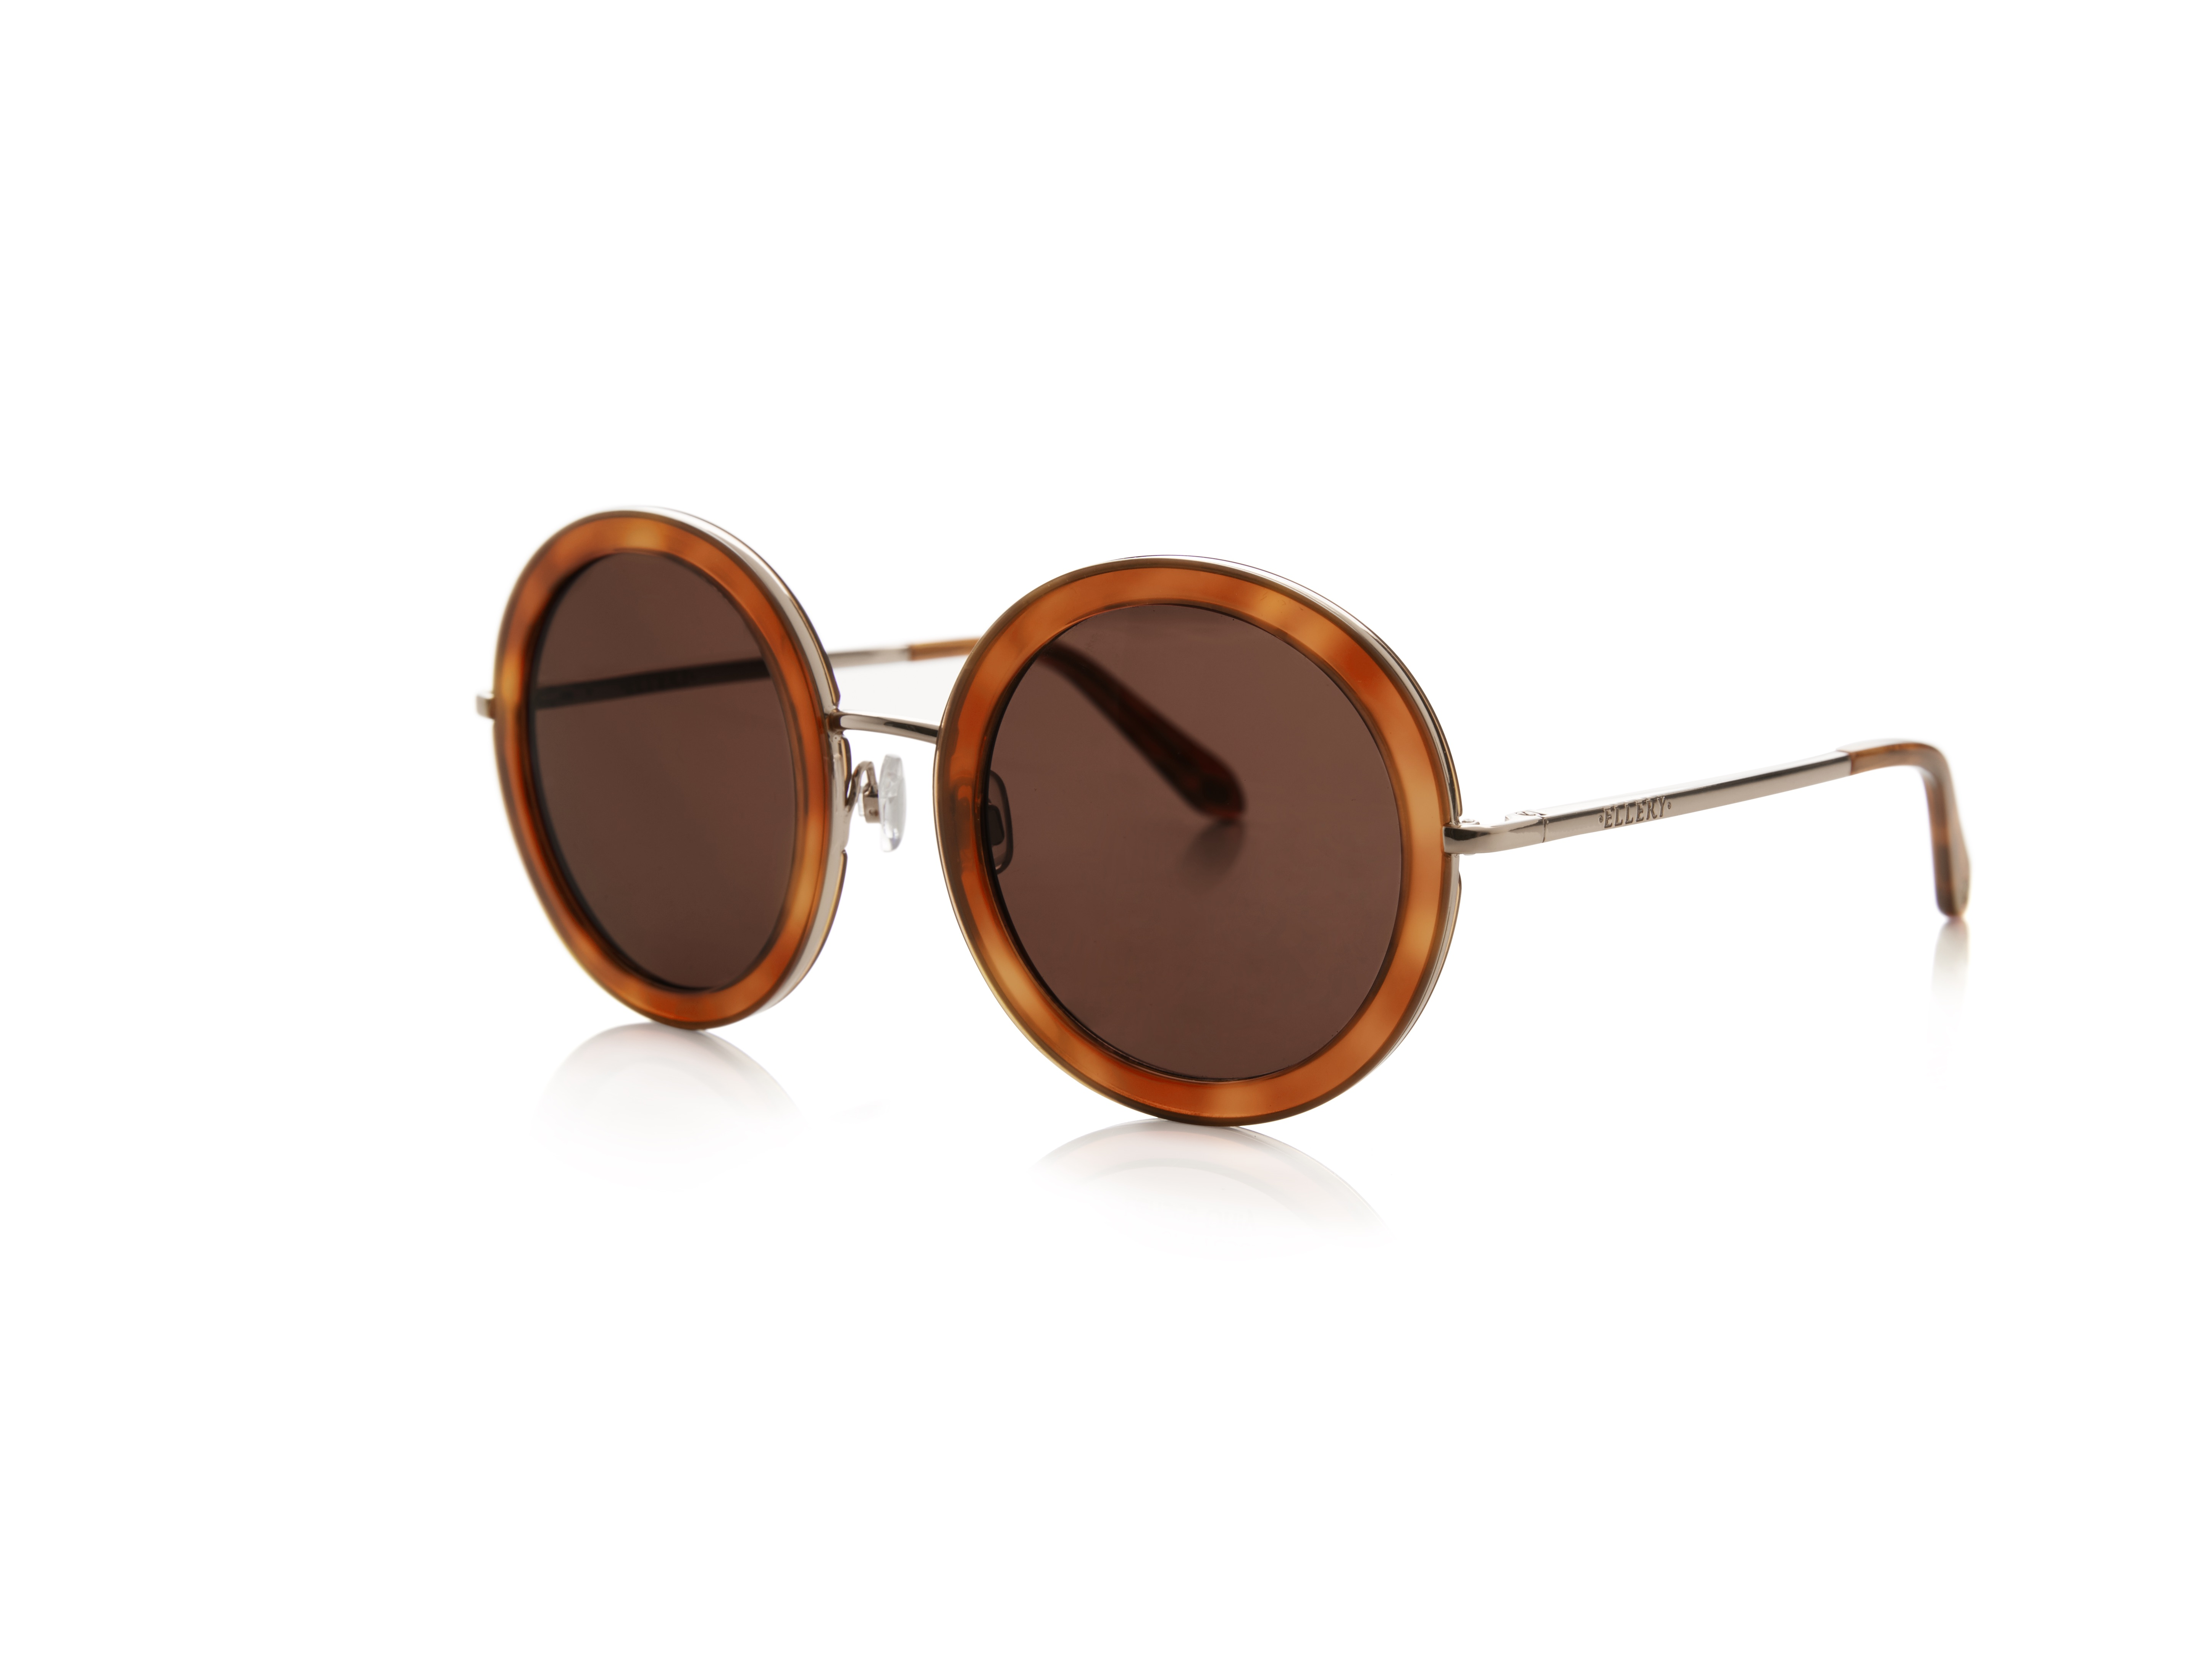 ELLERY SUN RX 07 SKU 30566484 RRP 2 pairs from $299 (2)